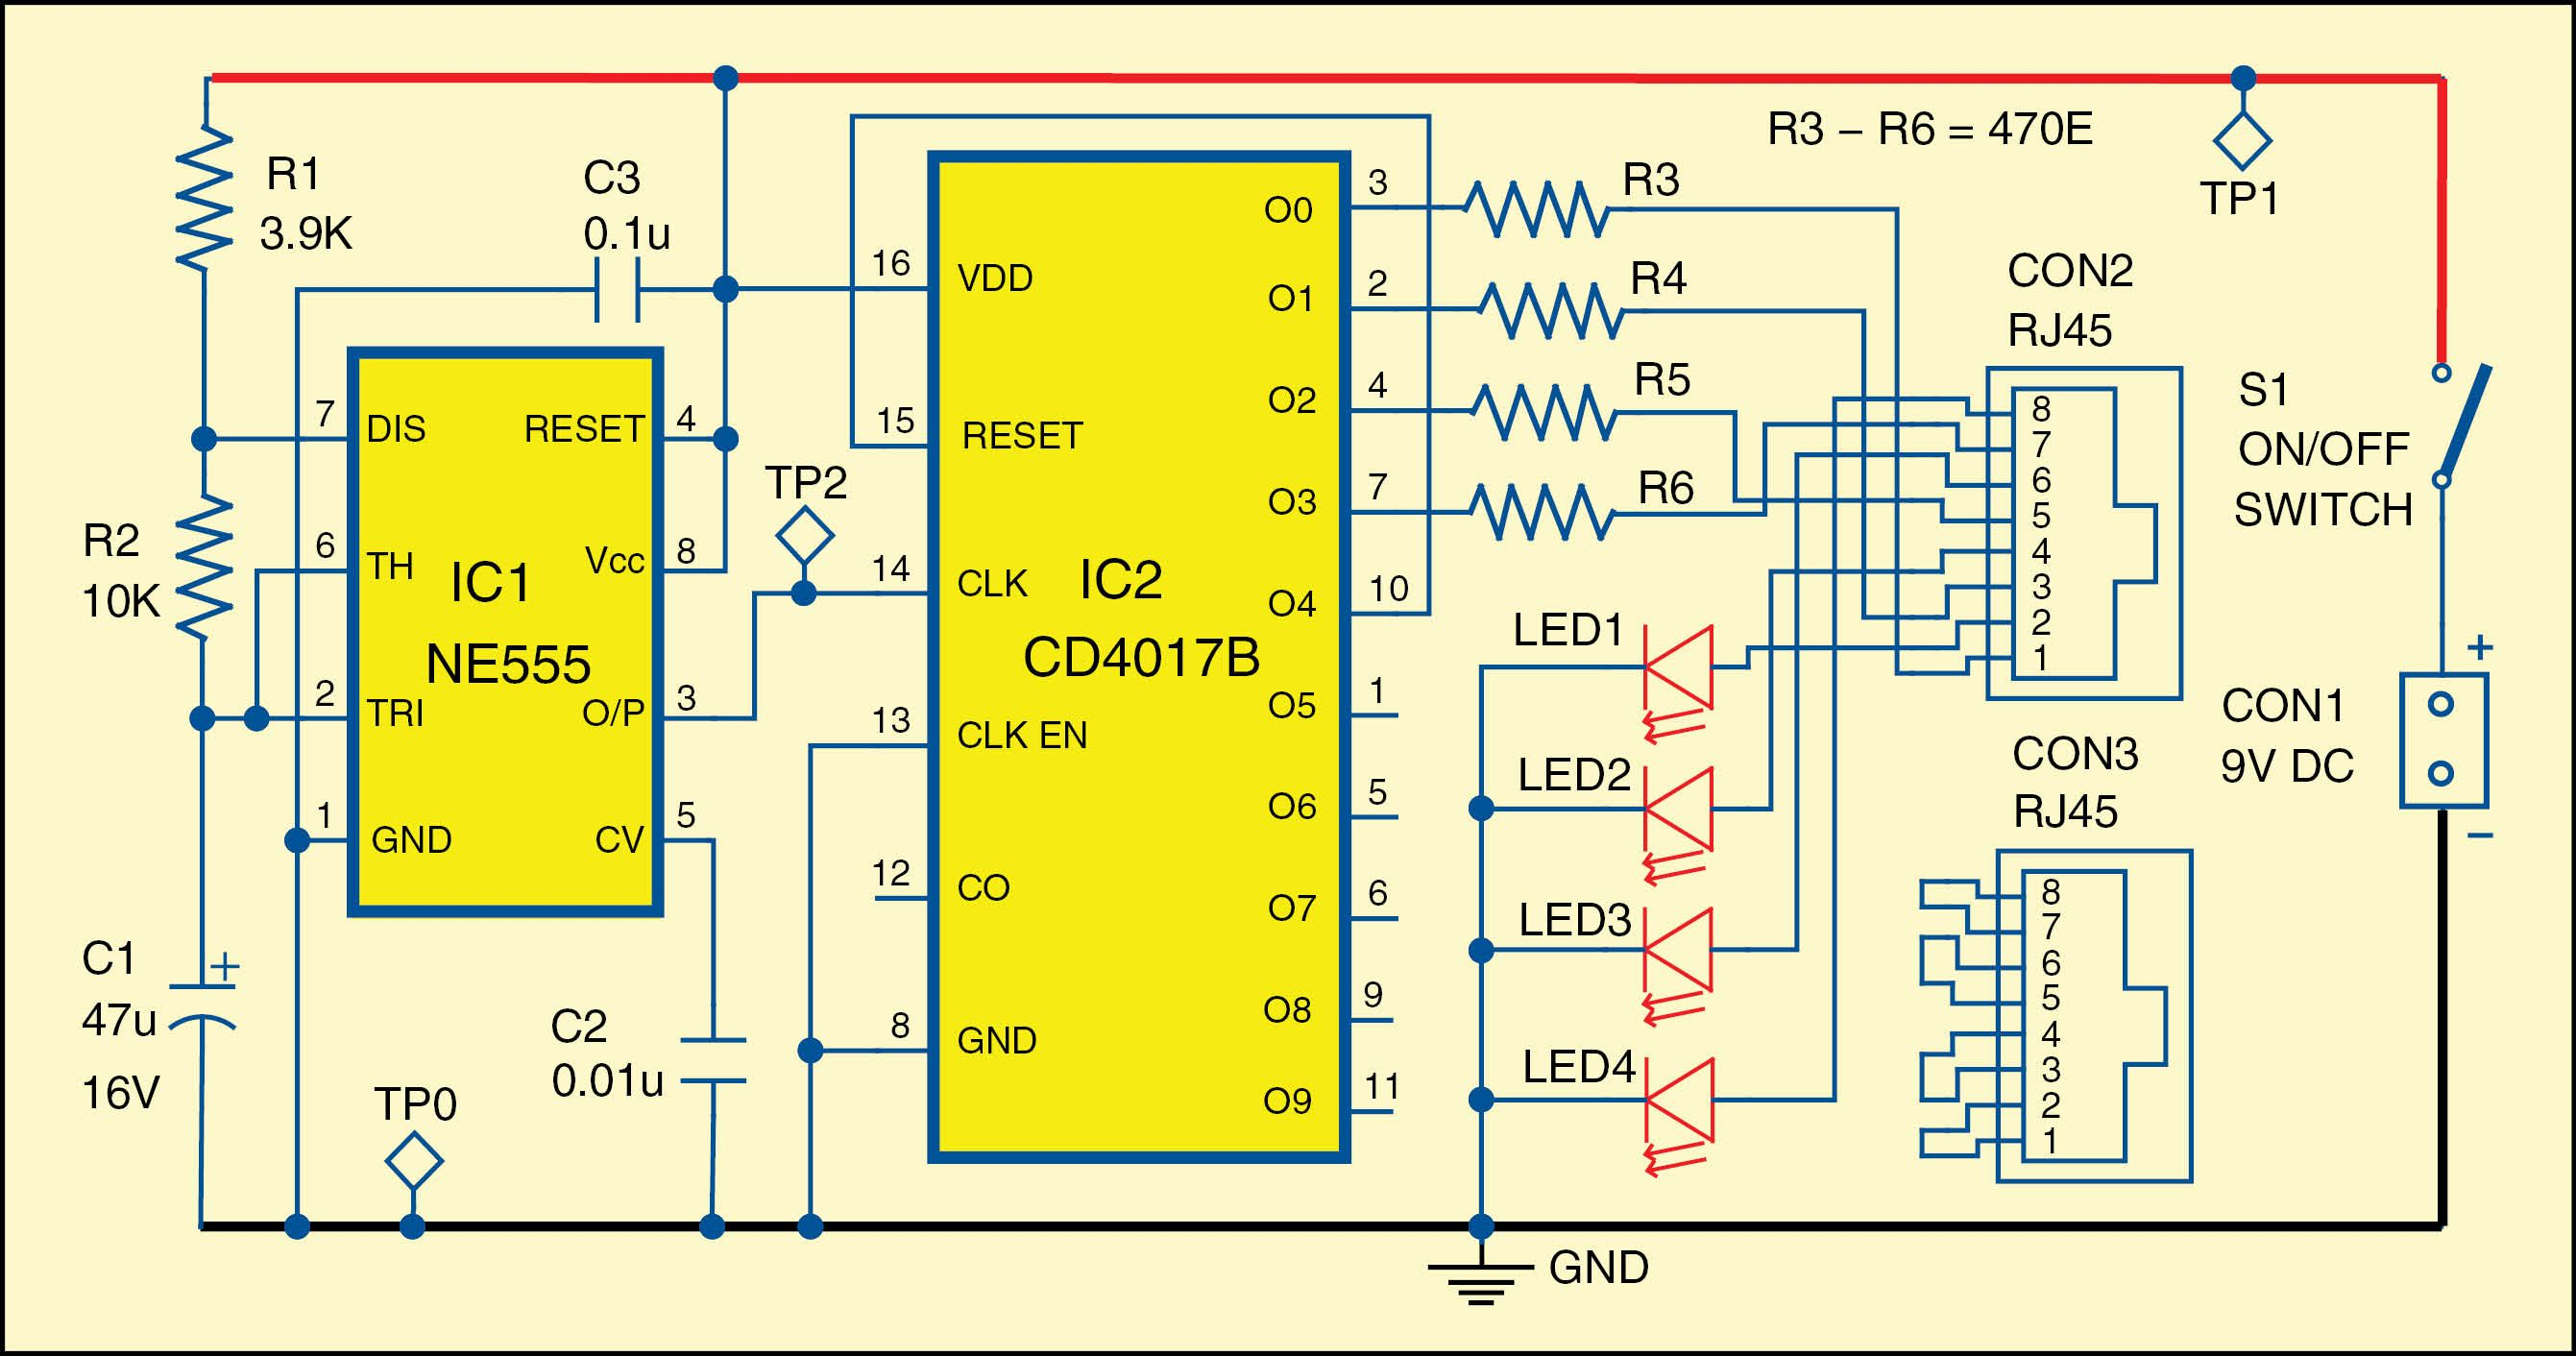 hight resolution of rj45 network cable tester circuit schematic wiring diagram show cable tester circuit moreover diagram of a